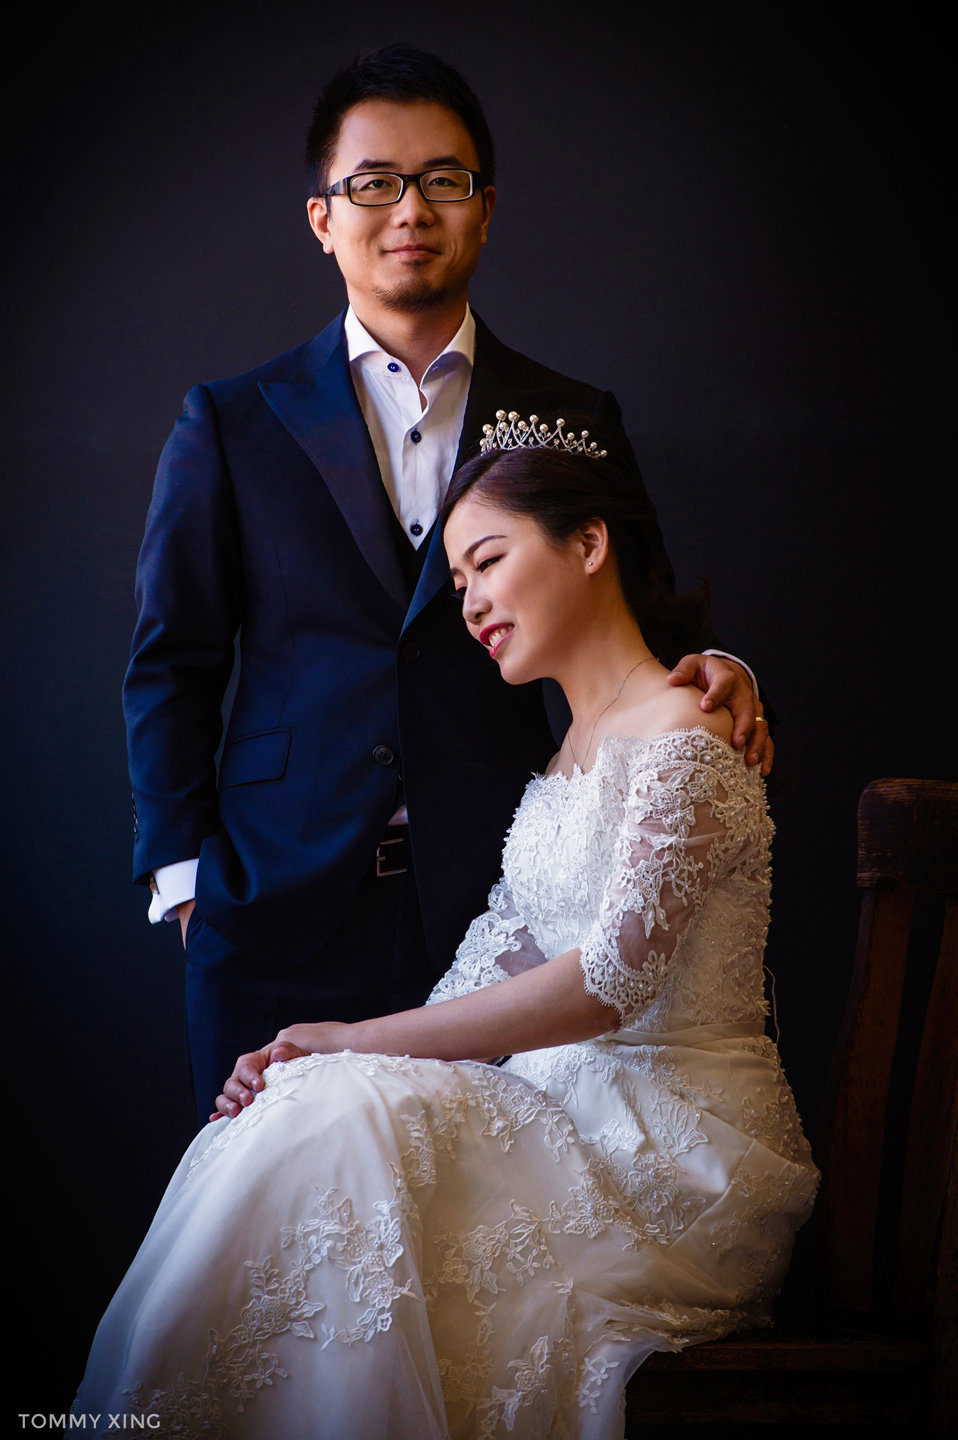 San Francisco Wedding Photo 旧金山湾区婚纱照 Tommy Xing Photography 洛杉矶 08.jpg